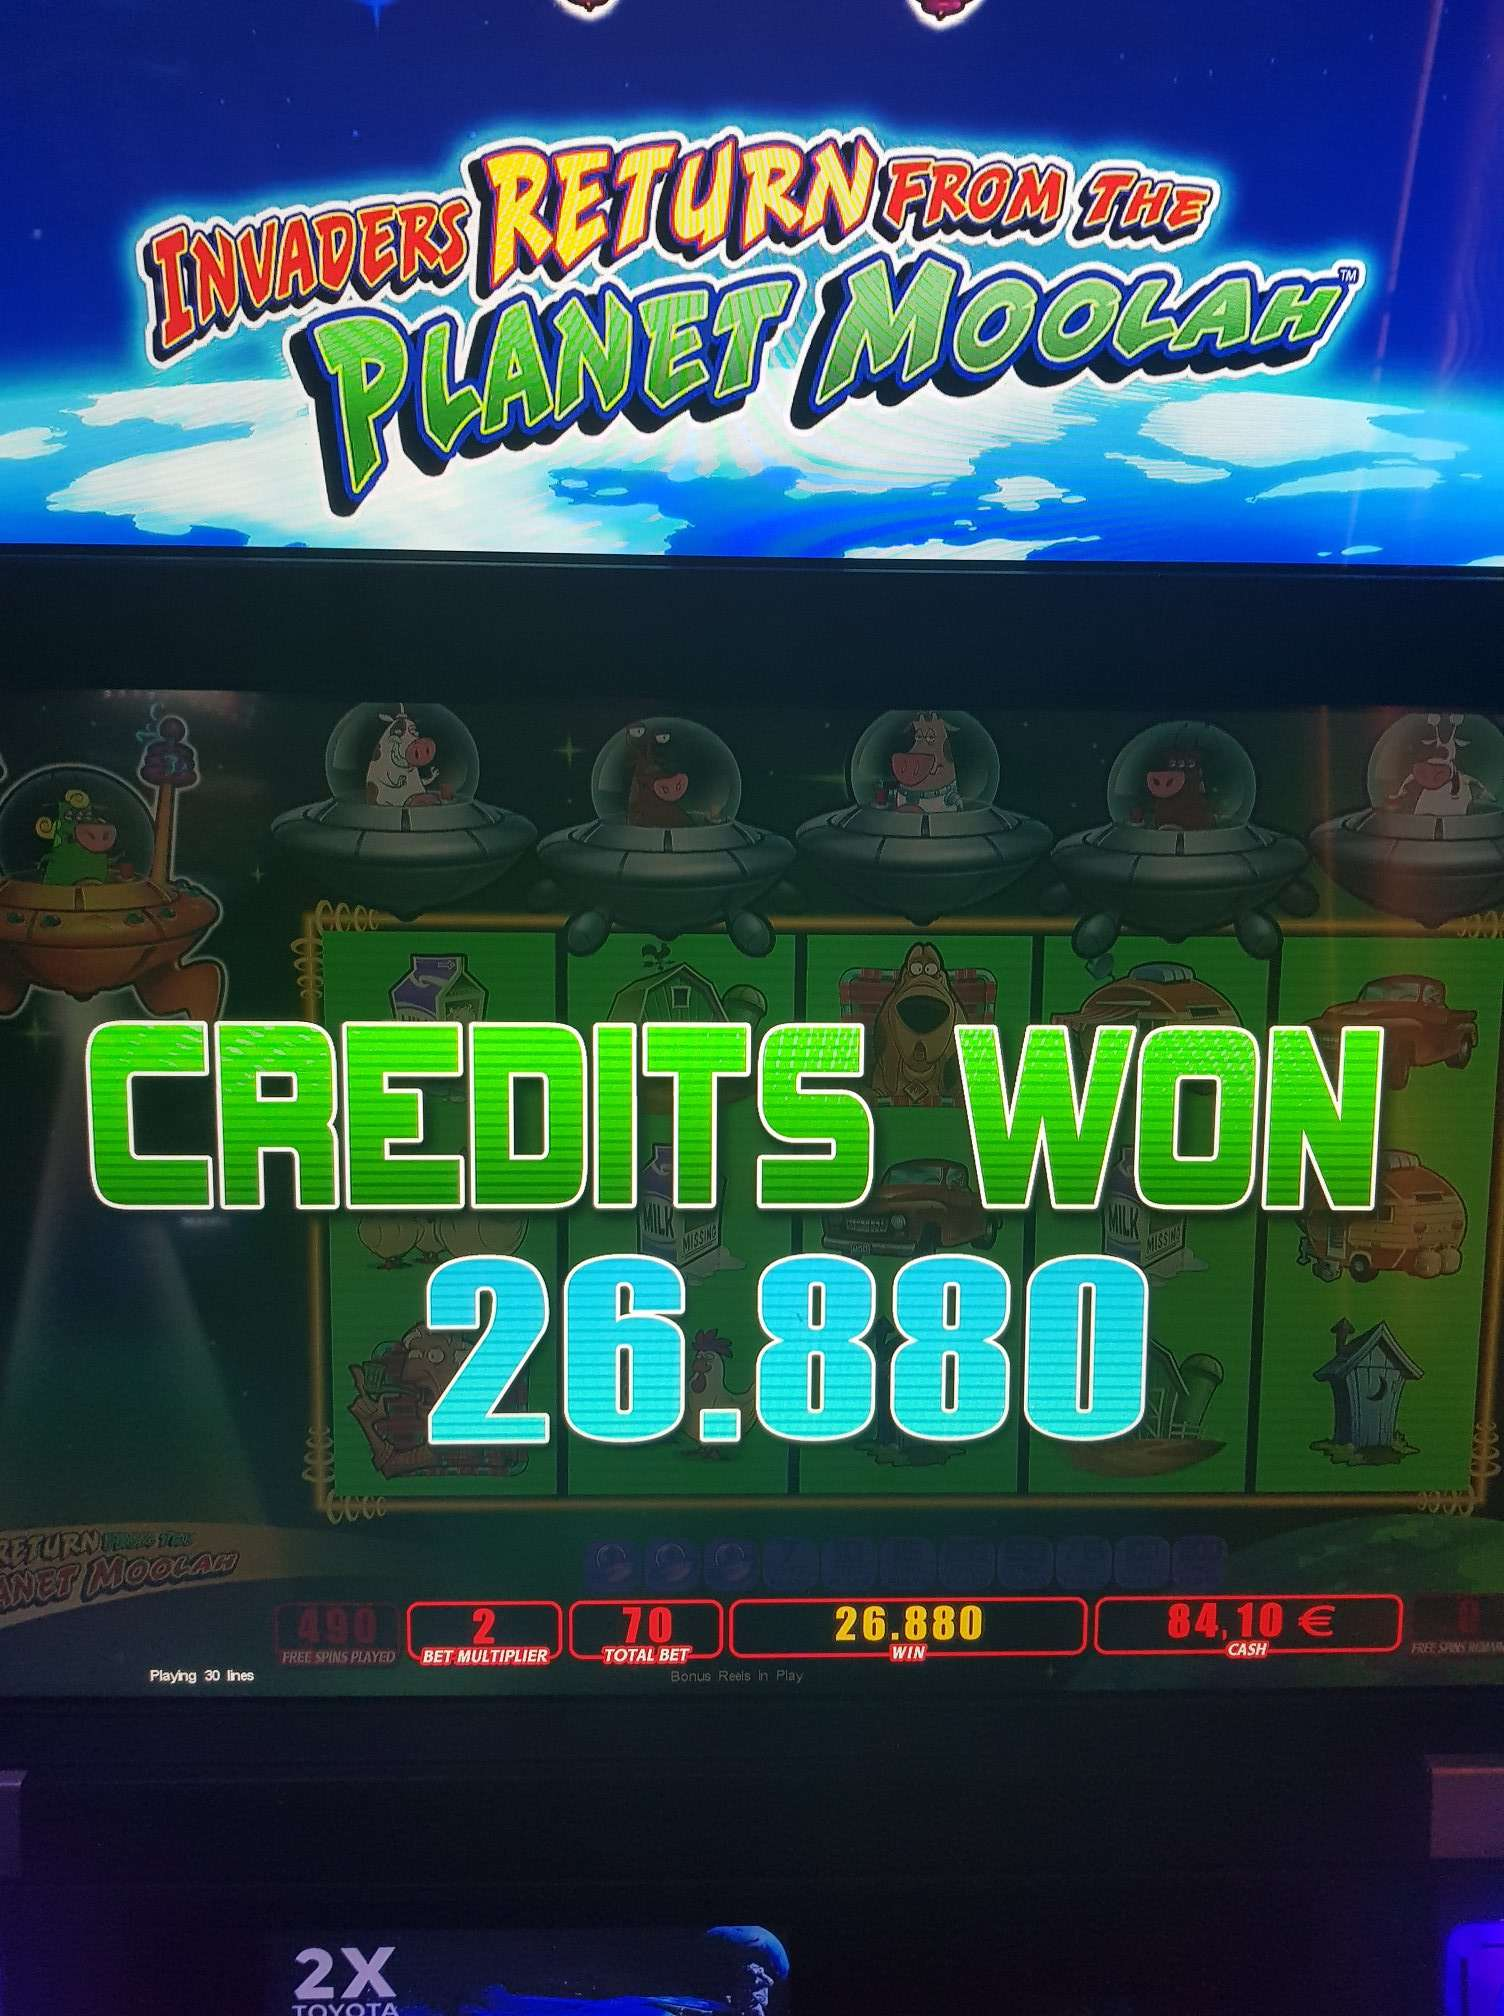 Invaders Return from the Planet Moolah Casino win picture by MrMork666 1.6.2020 268.80e 384X Casino Olympic Landbase